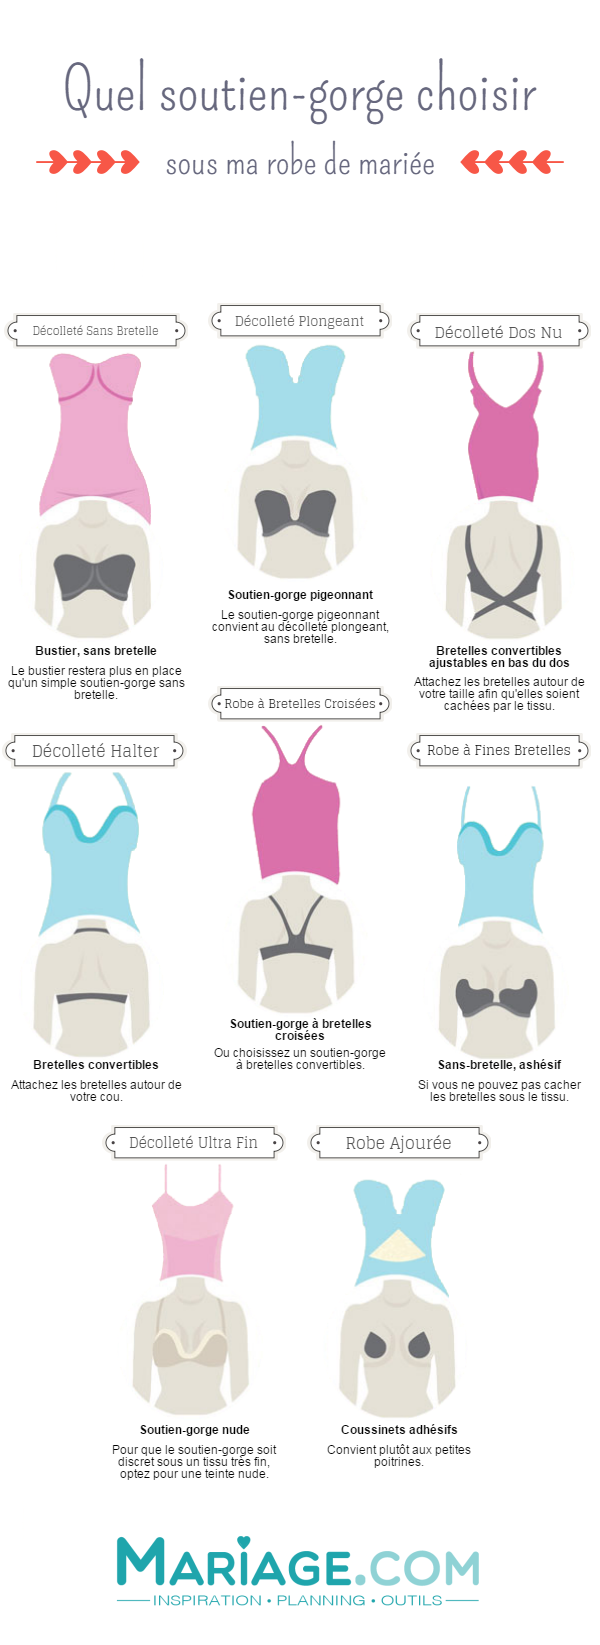 quel-soutien-gorge-sous-robe-de-mariee-infographie